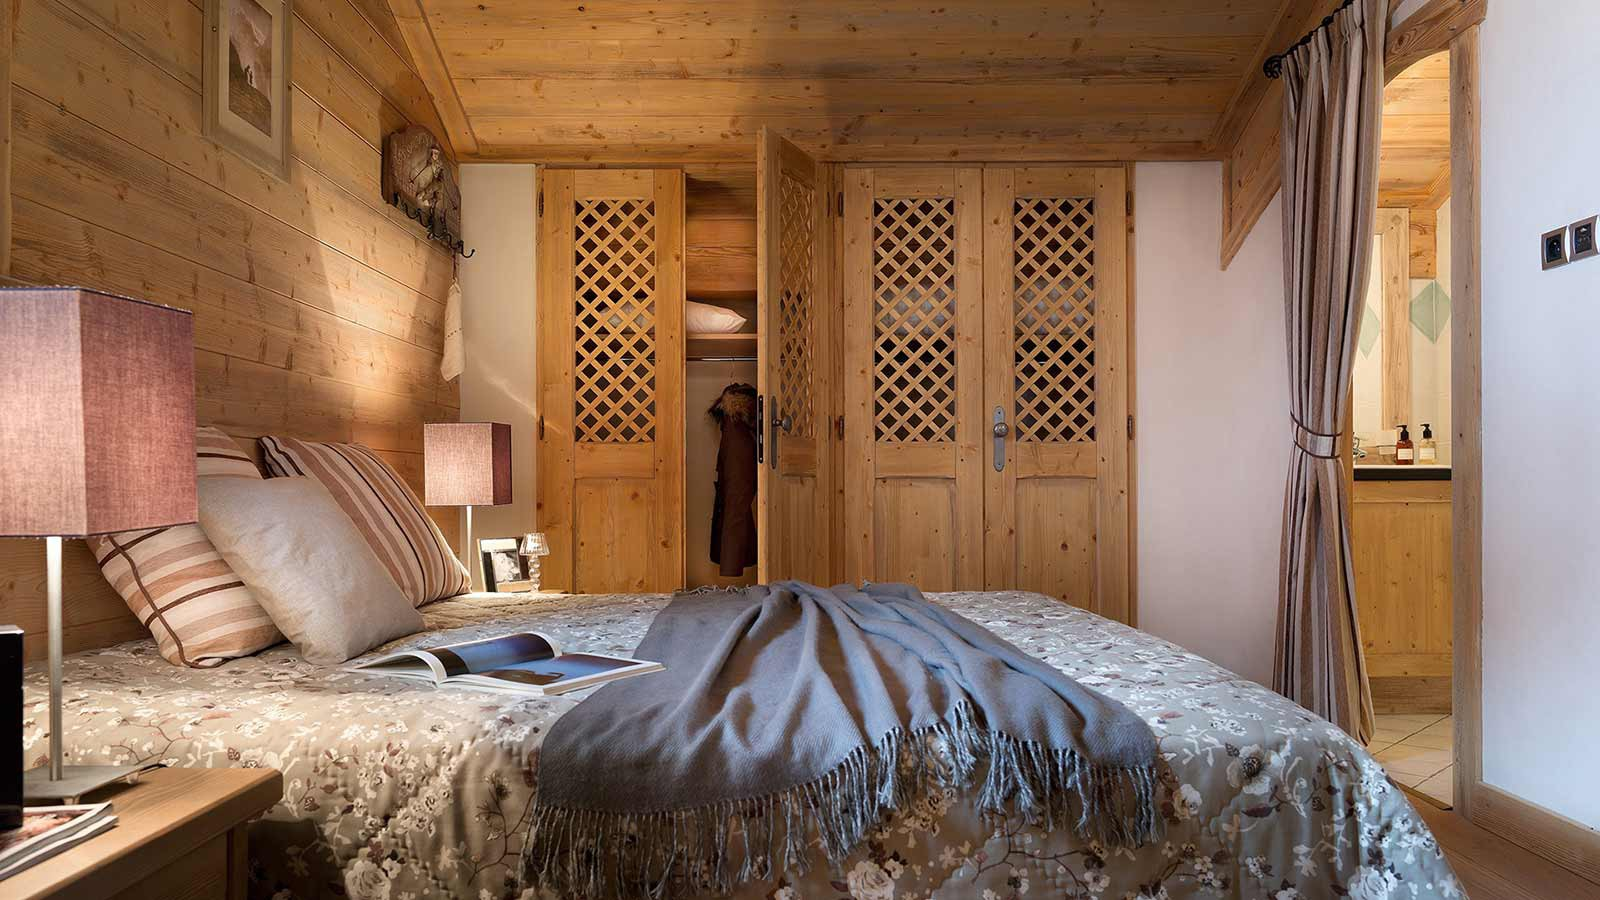 Rooms - Les Cimes Blanches, La Rosiere, France